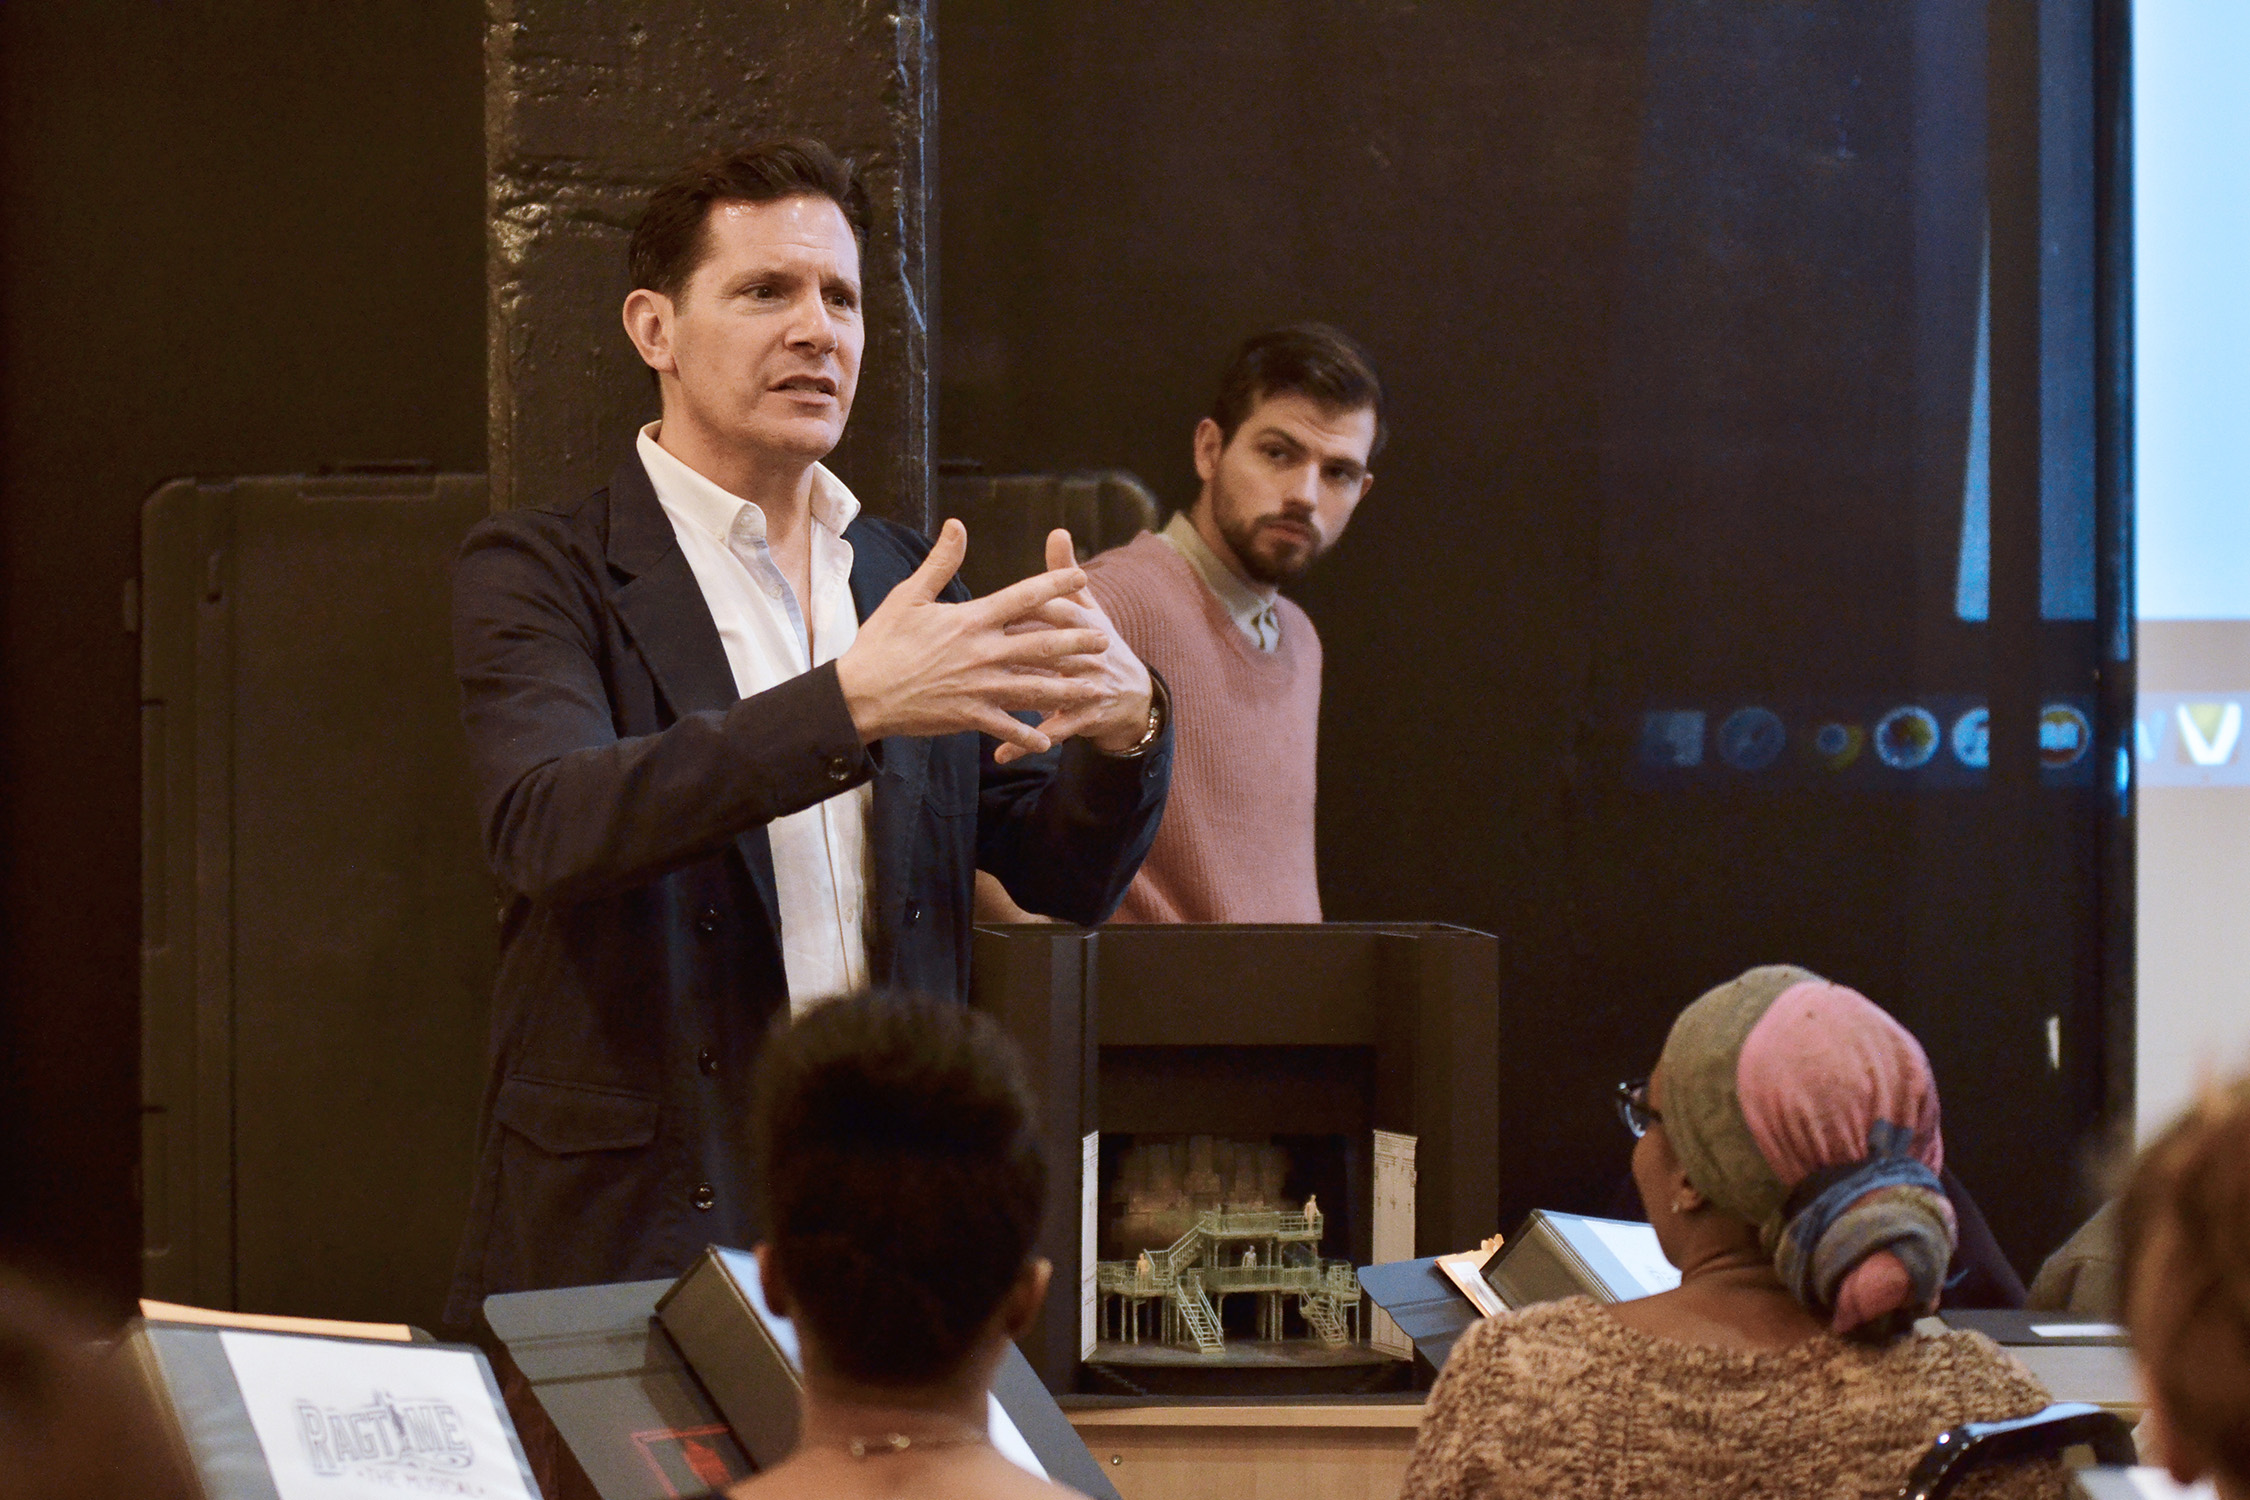 Peter Flynn speaks to the cast in a rehearsal room.